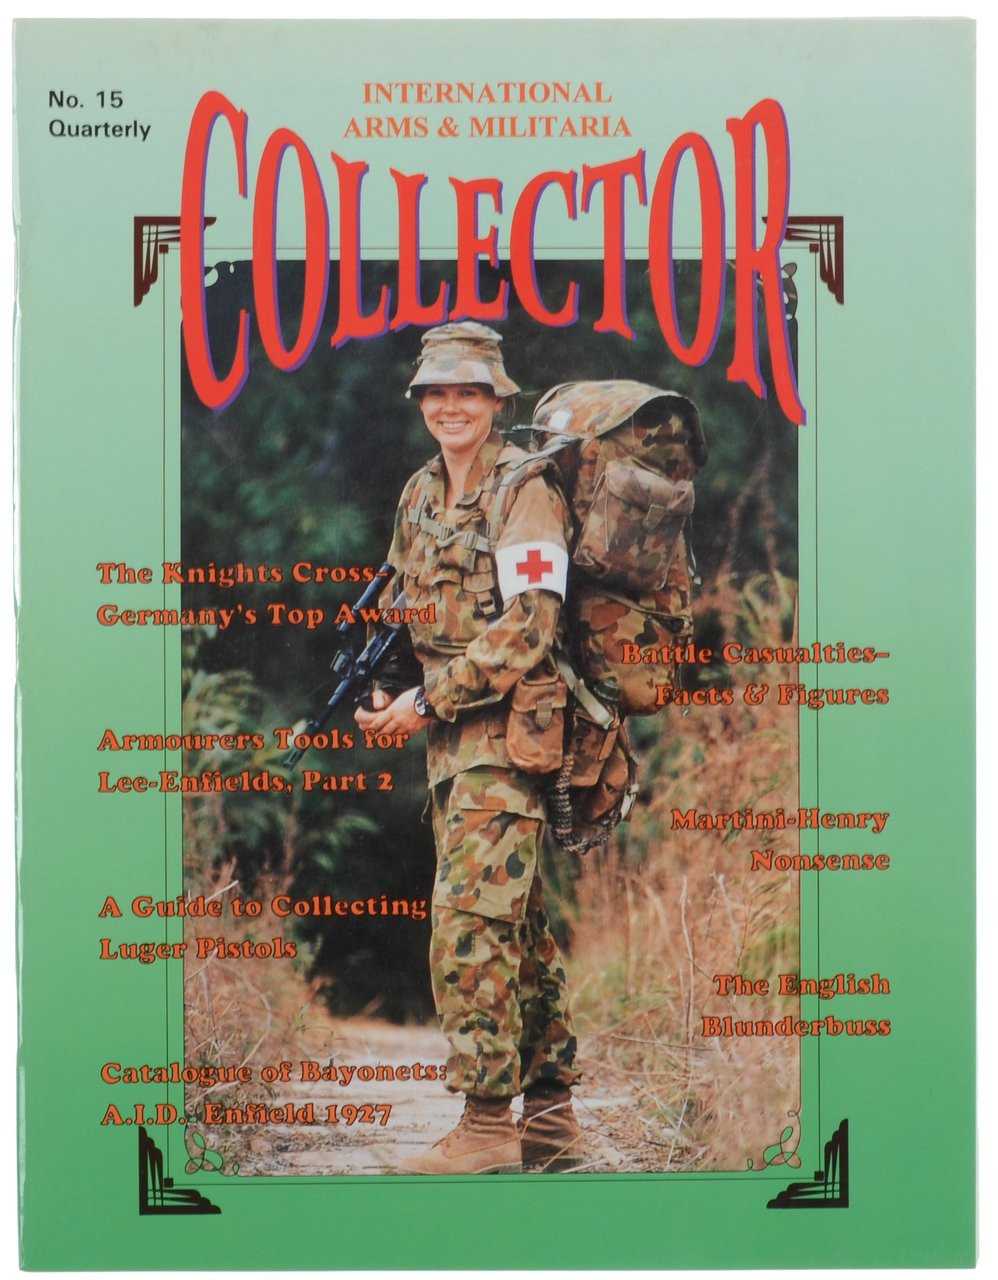 International Arms & Militaria Collector No. 15